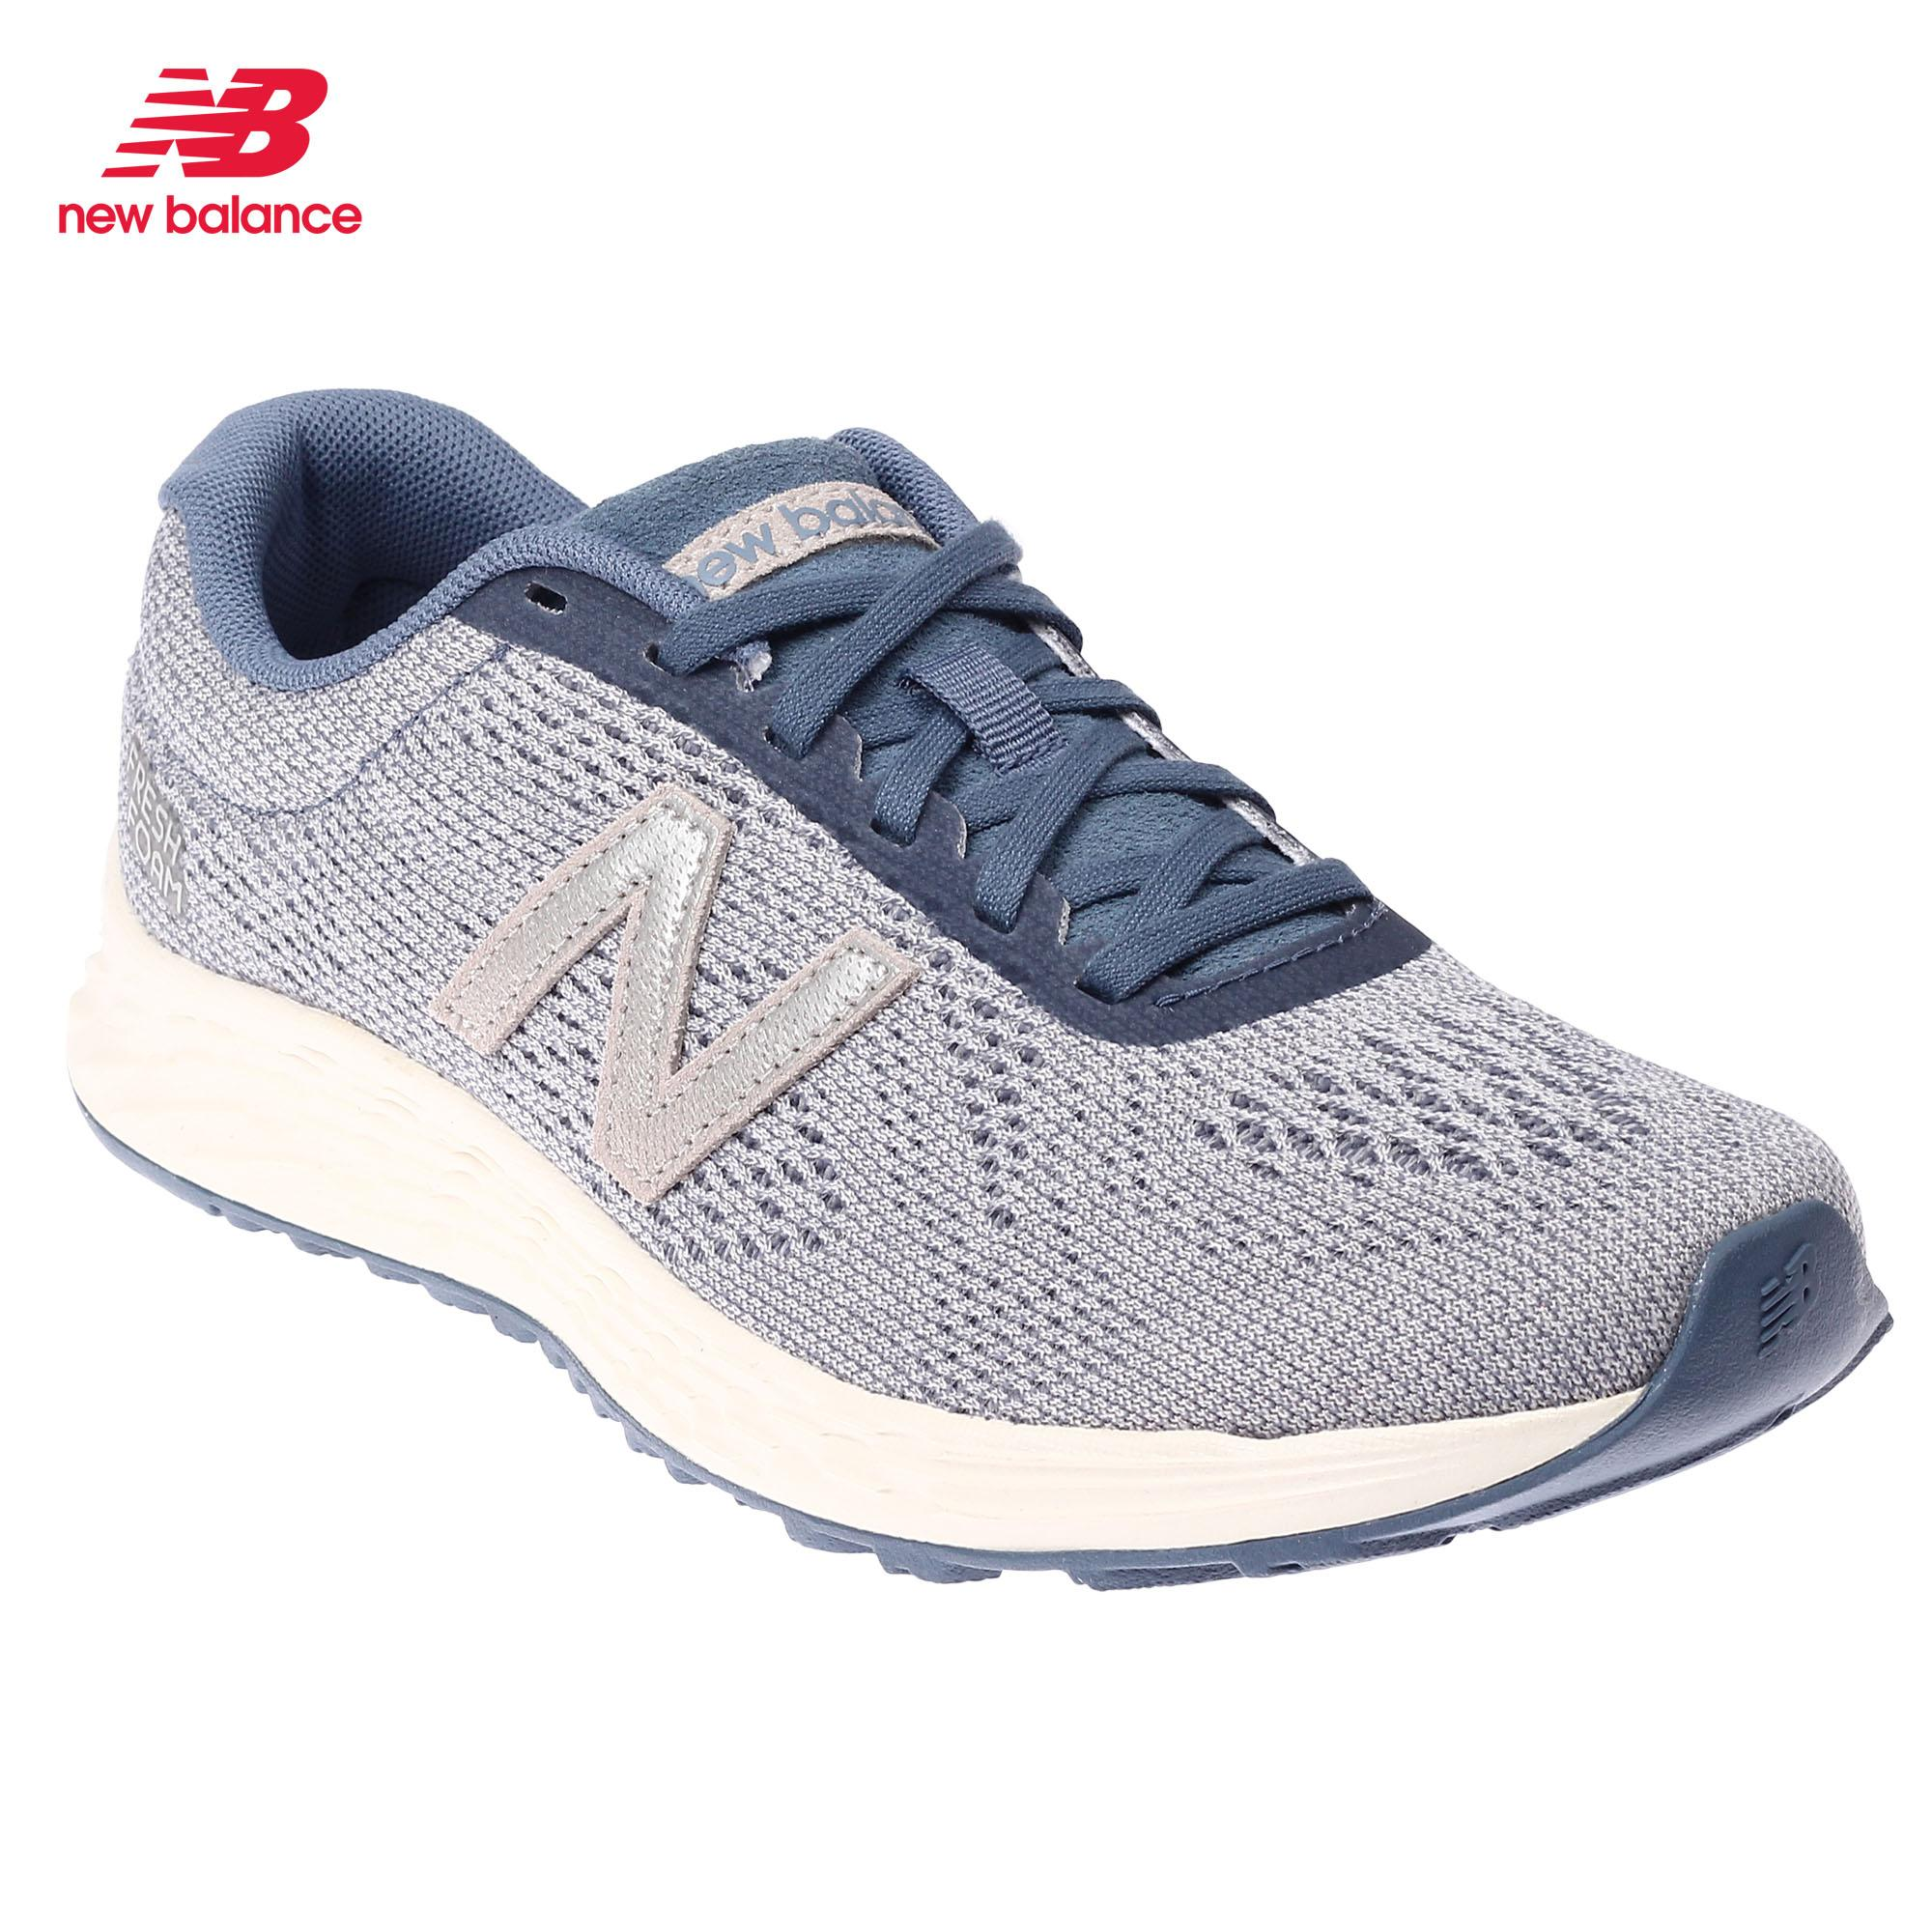 29e3ed271556 New Balance Philippines -New Balance Womens Athletic Shoes for sale ...